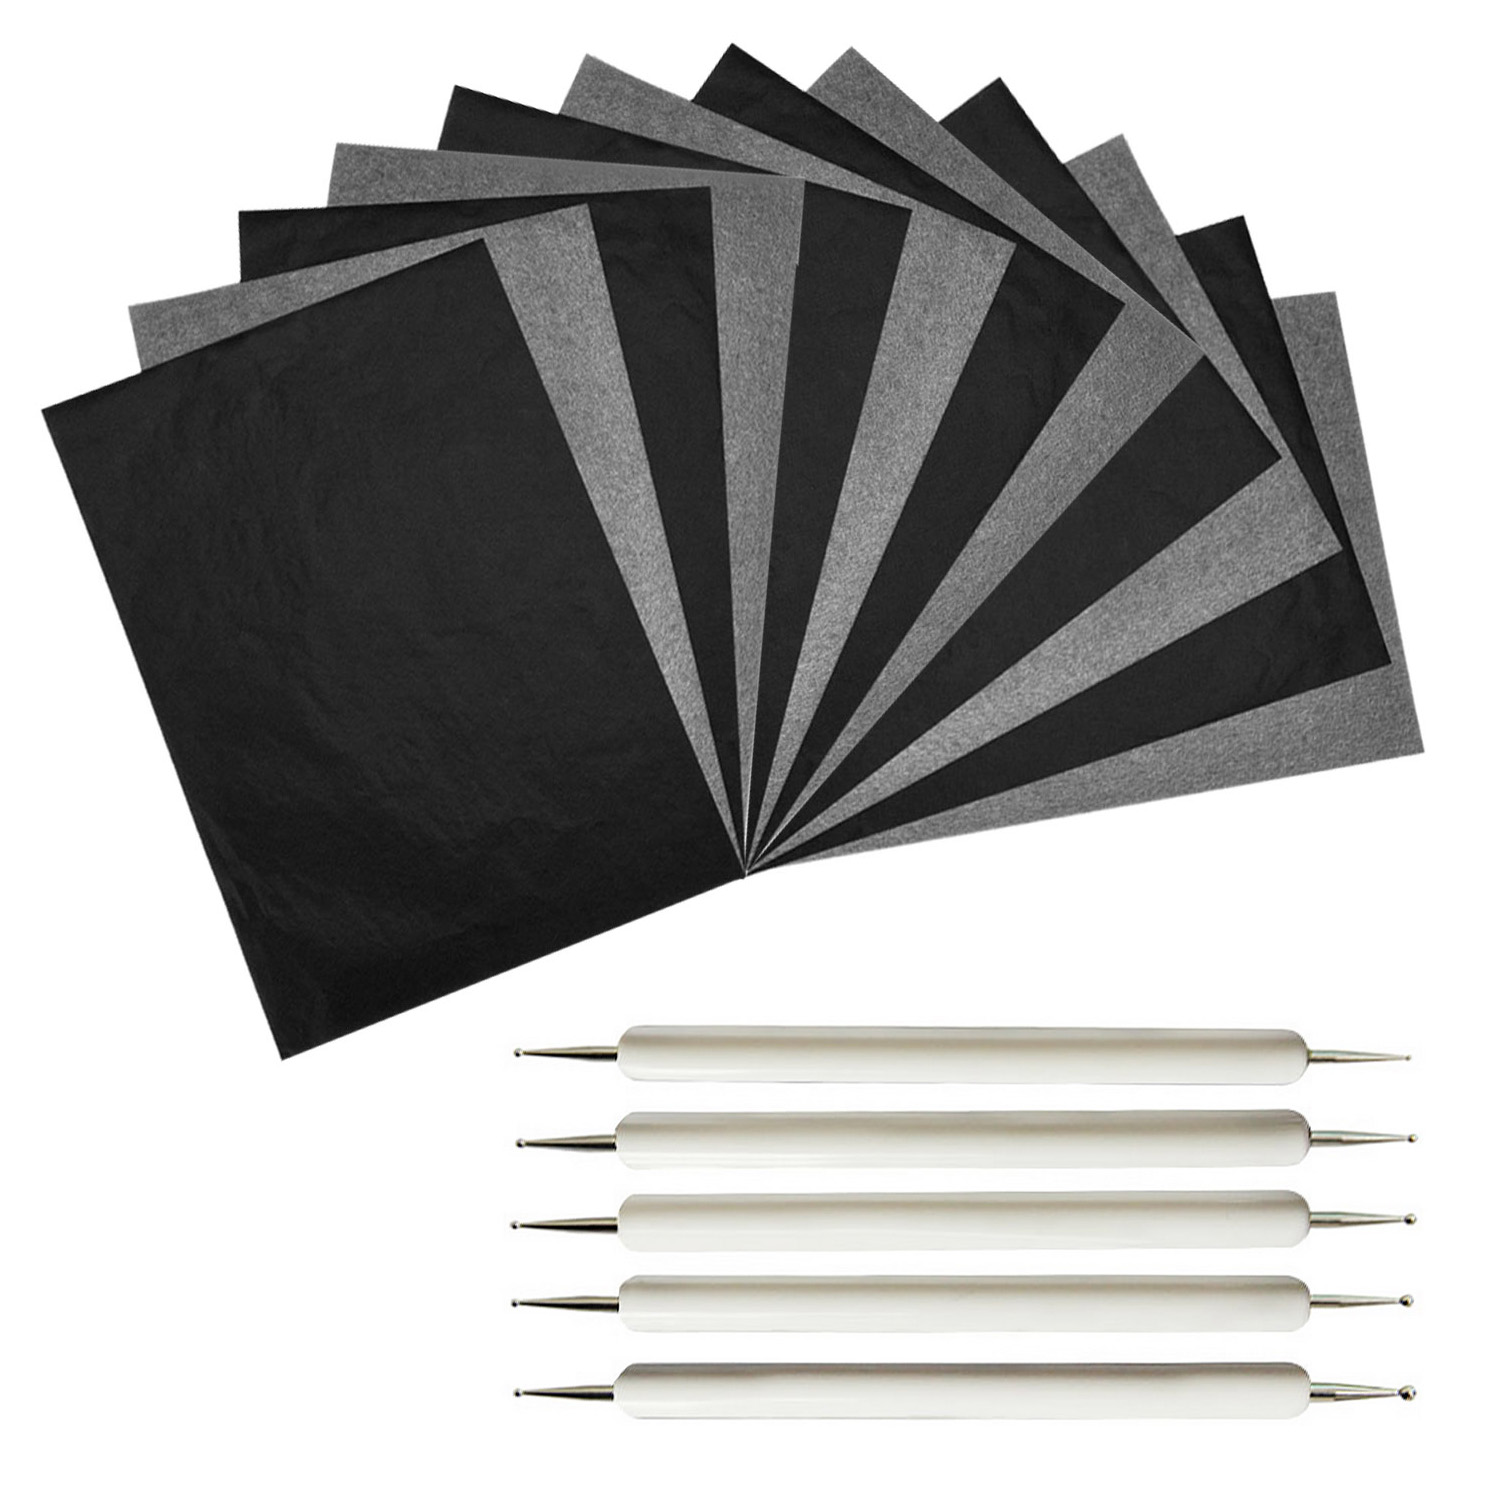 100 Sheet A4 Size Reusable Carbon Tracing Transfer Paper   5PCS Embossing Stylus For Canvas Wood Glass Metal Ceramic Clay